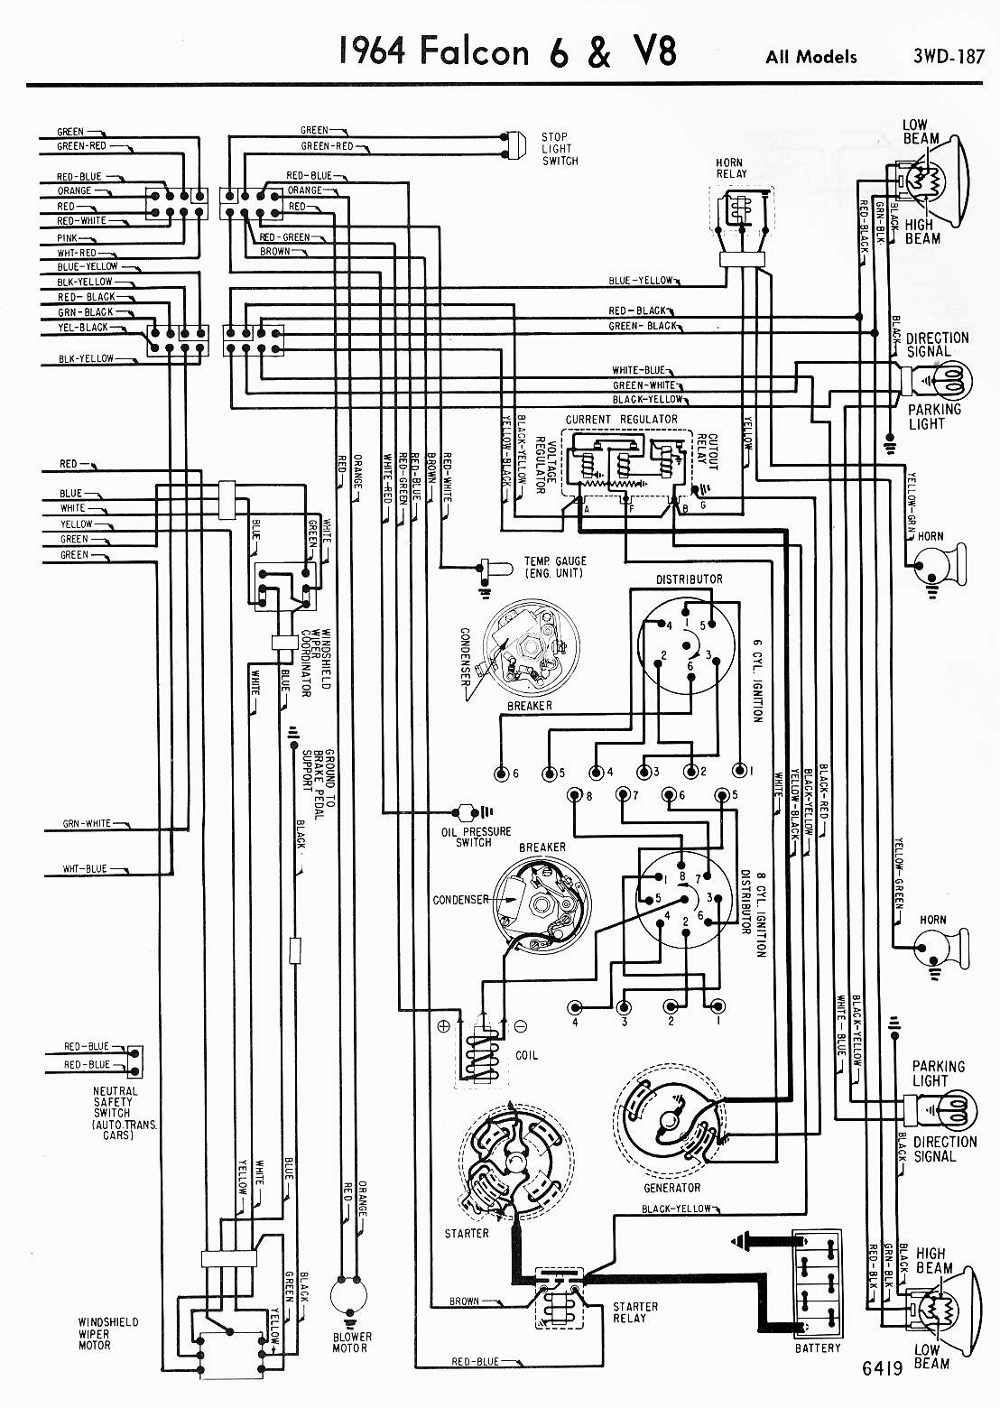 diagram] 64 ford falcon wiring diagram full version hd quality wiring  diagram - diagramlab.conservatoire-chanterie.fr  conservatoire de la chanterie